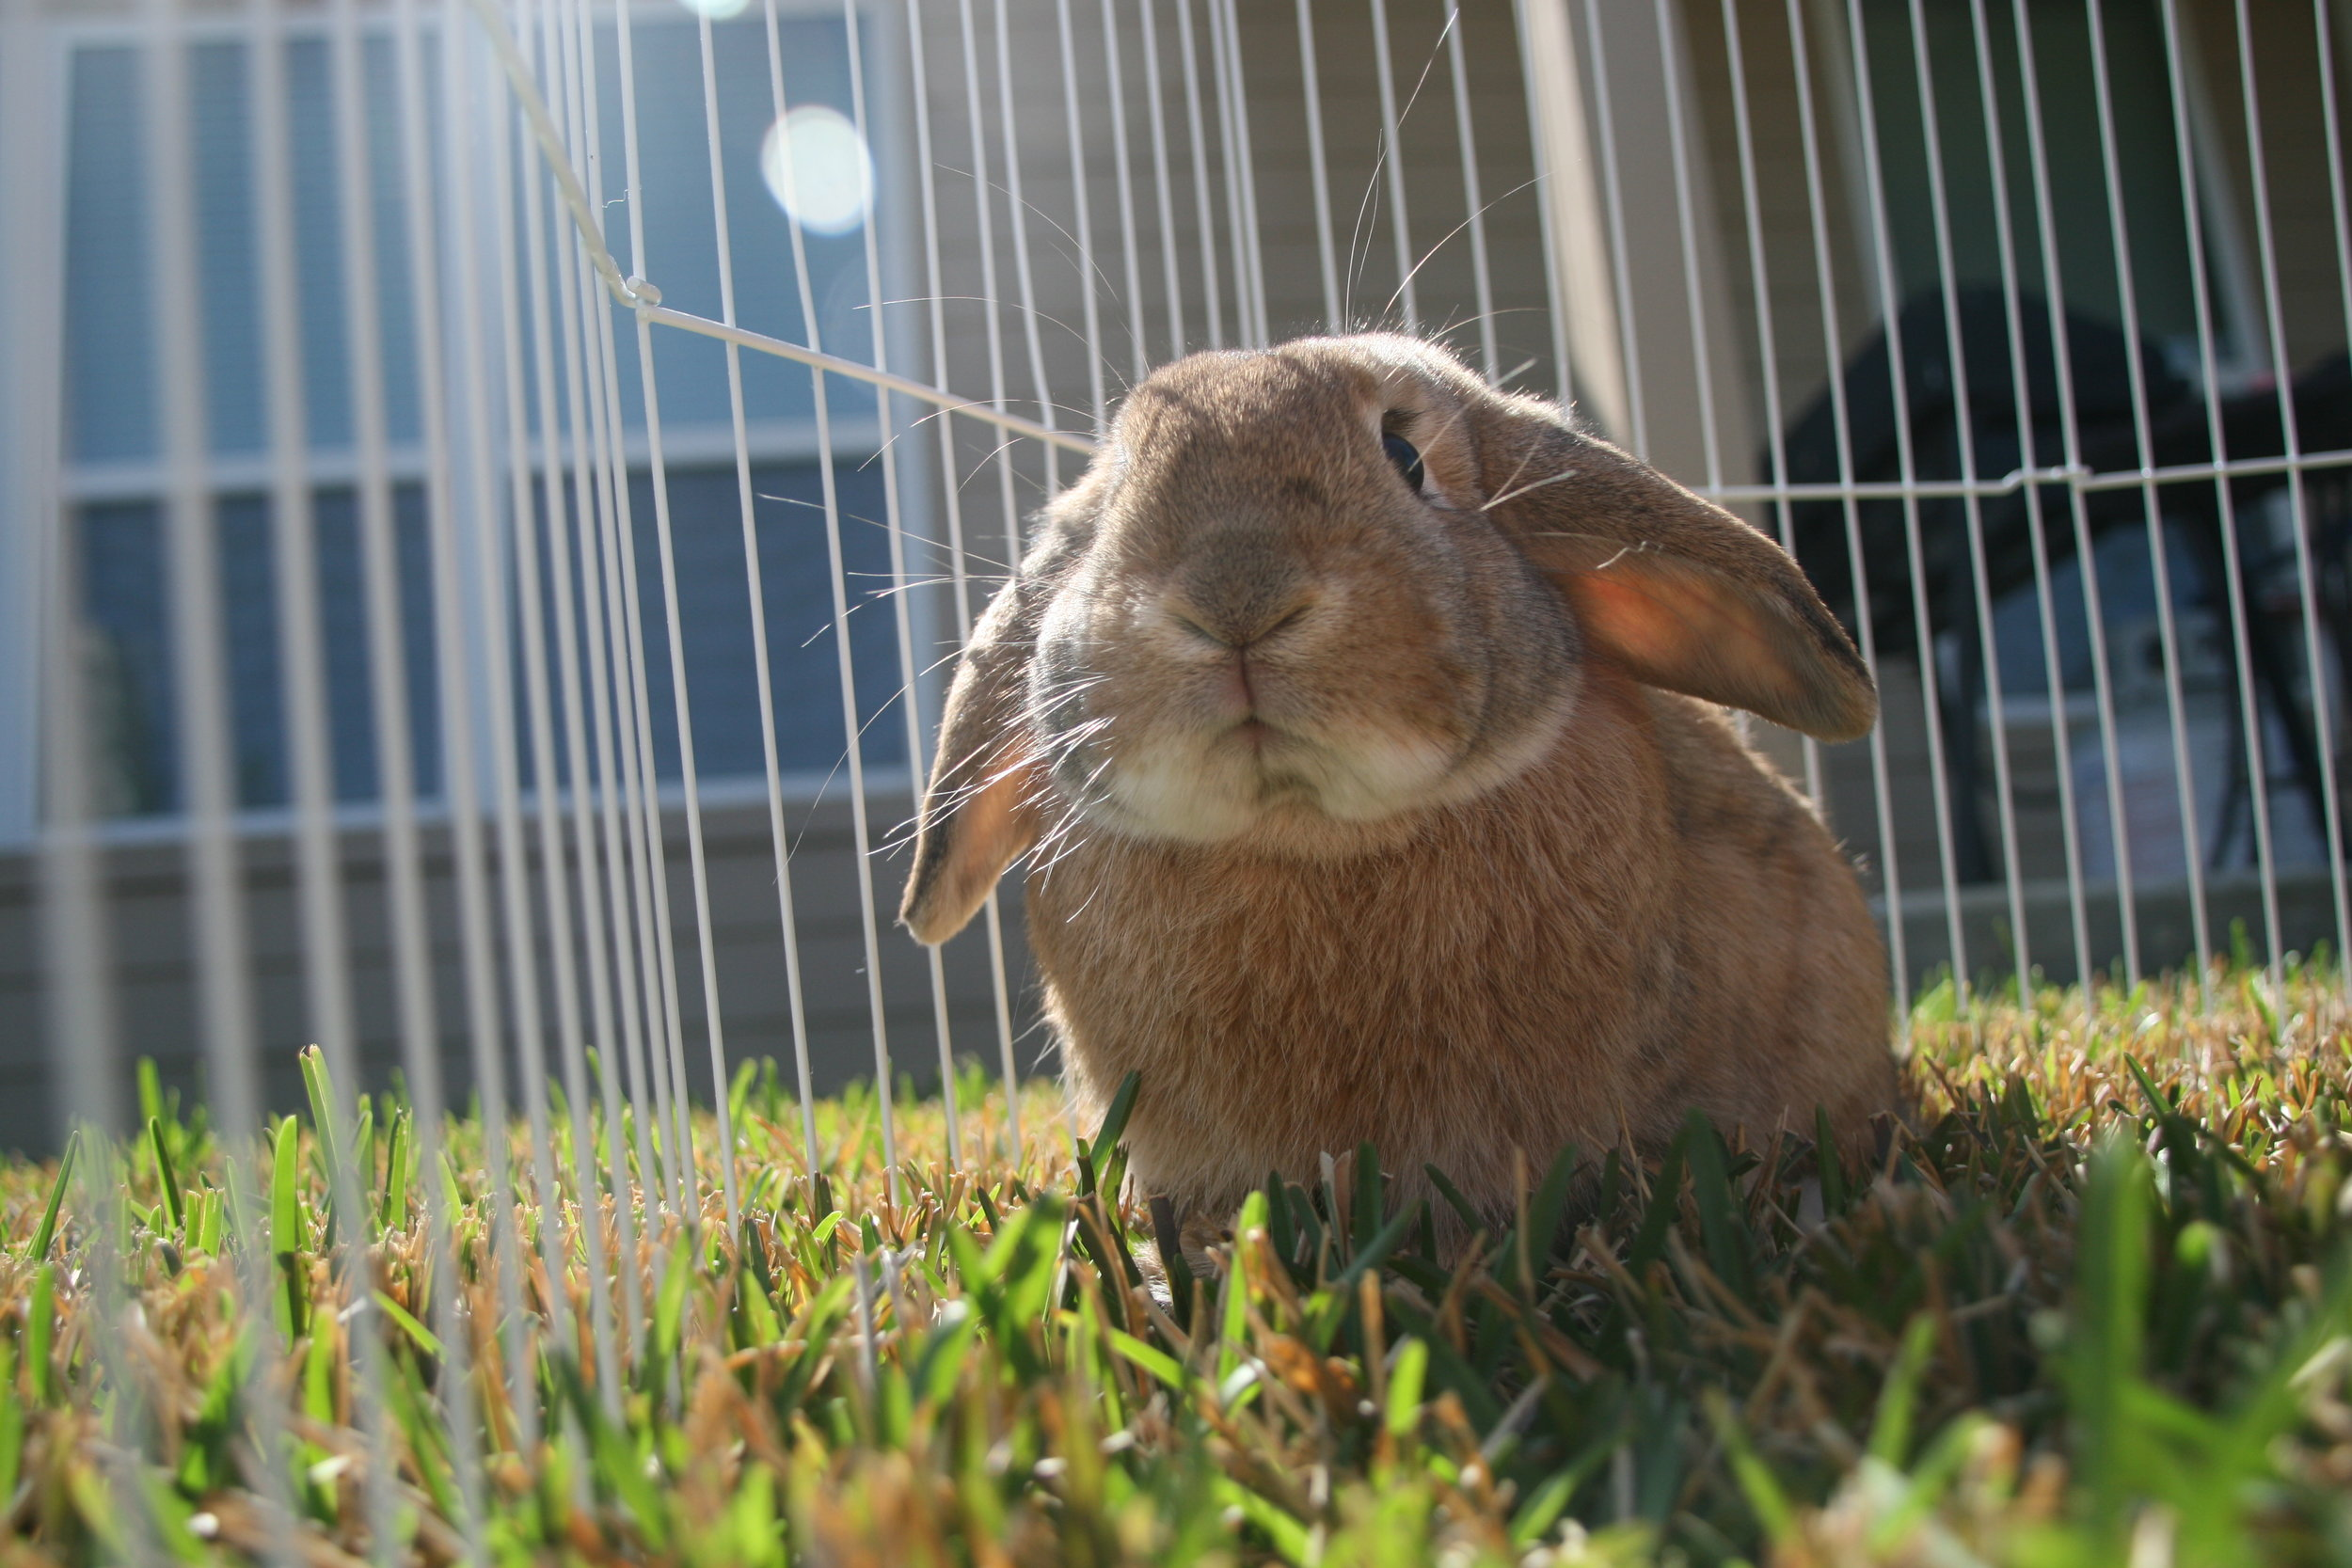 Bunny Soaks Up the Sun Outside on the Grass 1